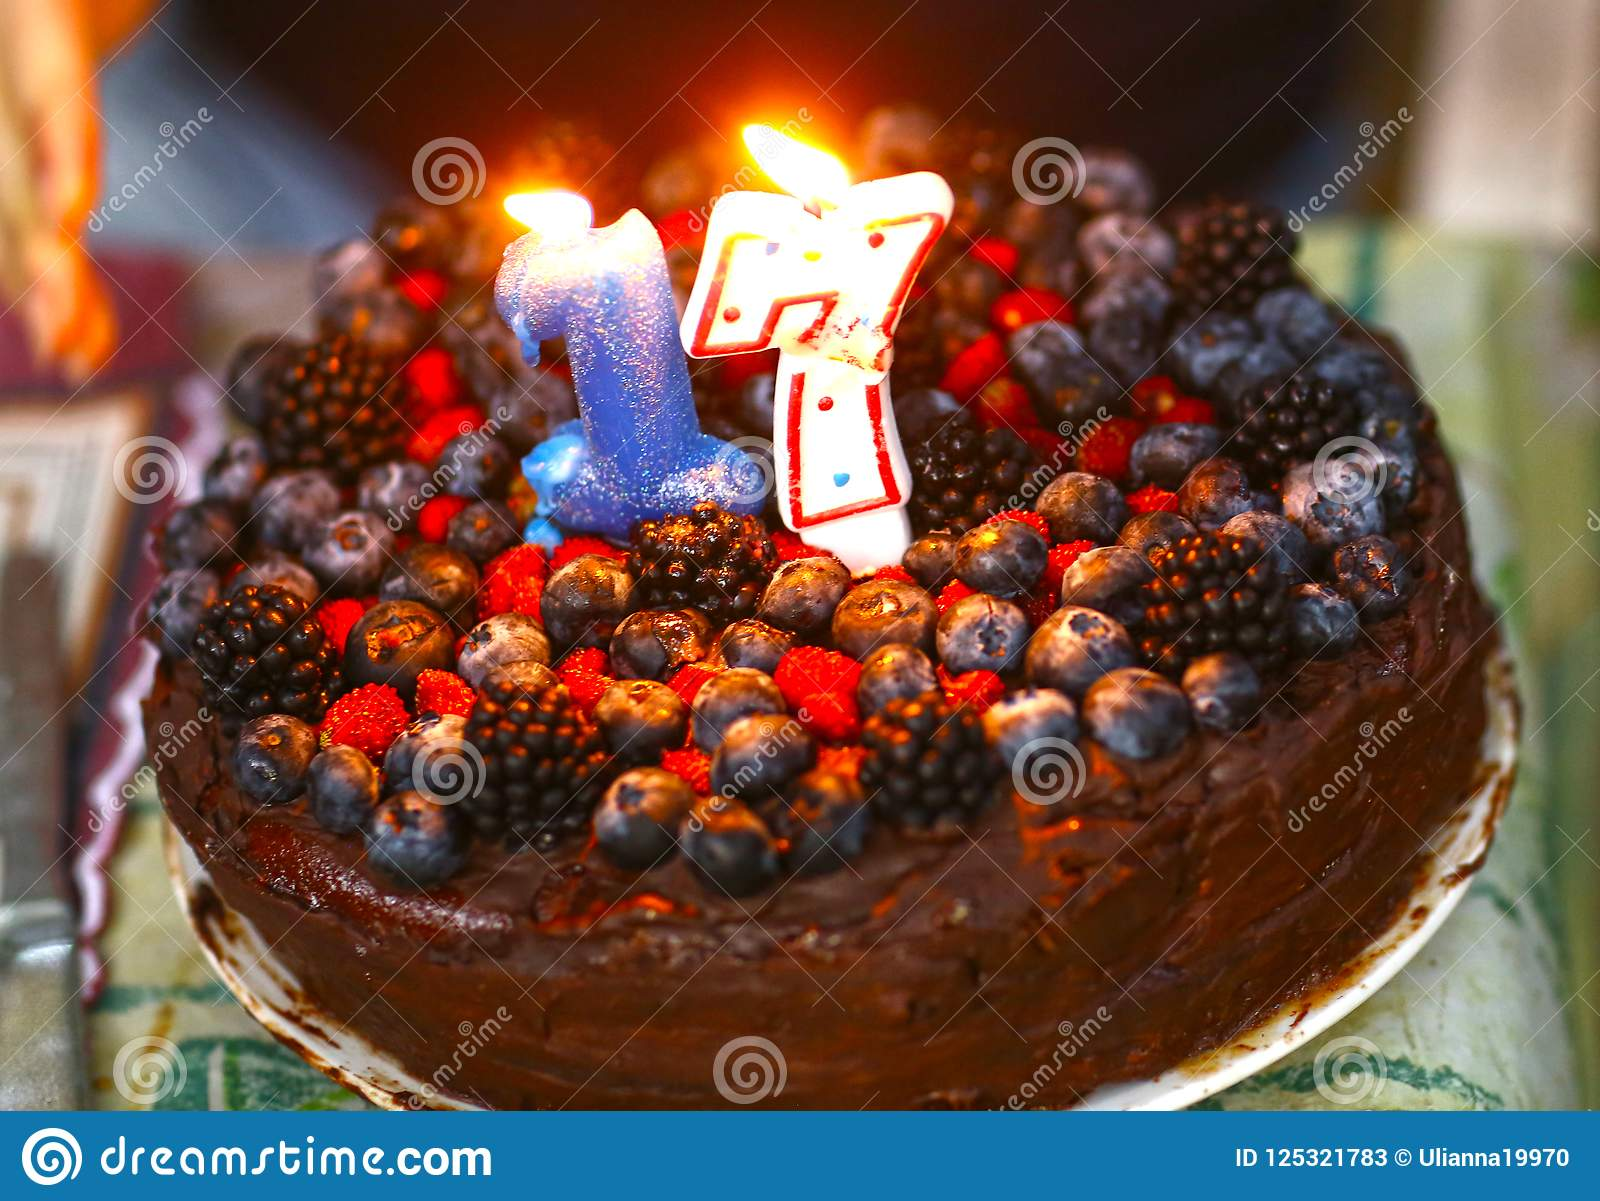 Stupendous Birthday Cake For 17 Year Old Girl Made With Chocolate And Peanut Funny Birthday Cards Online Alyptdamsfinfo